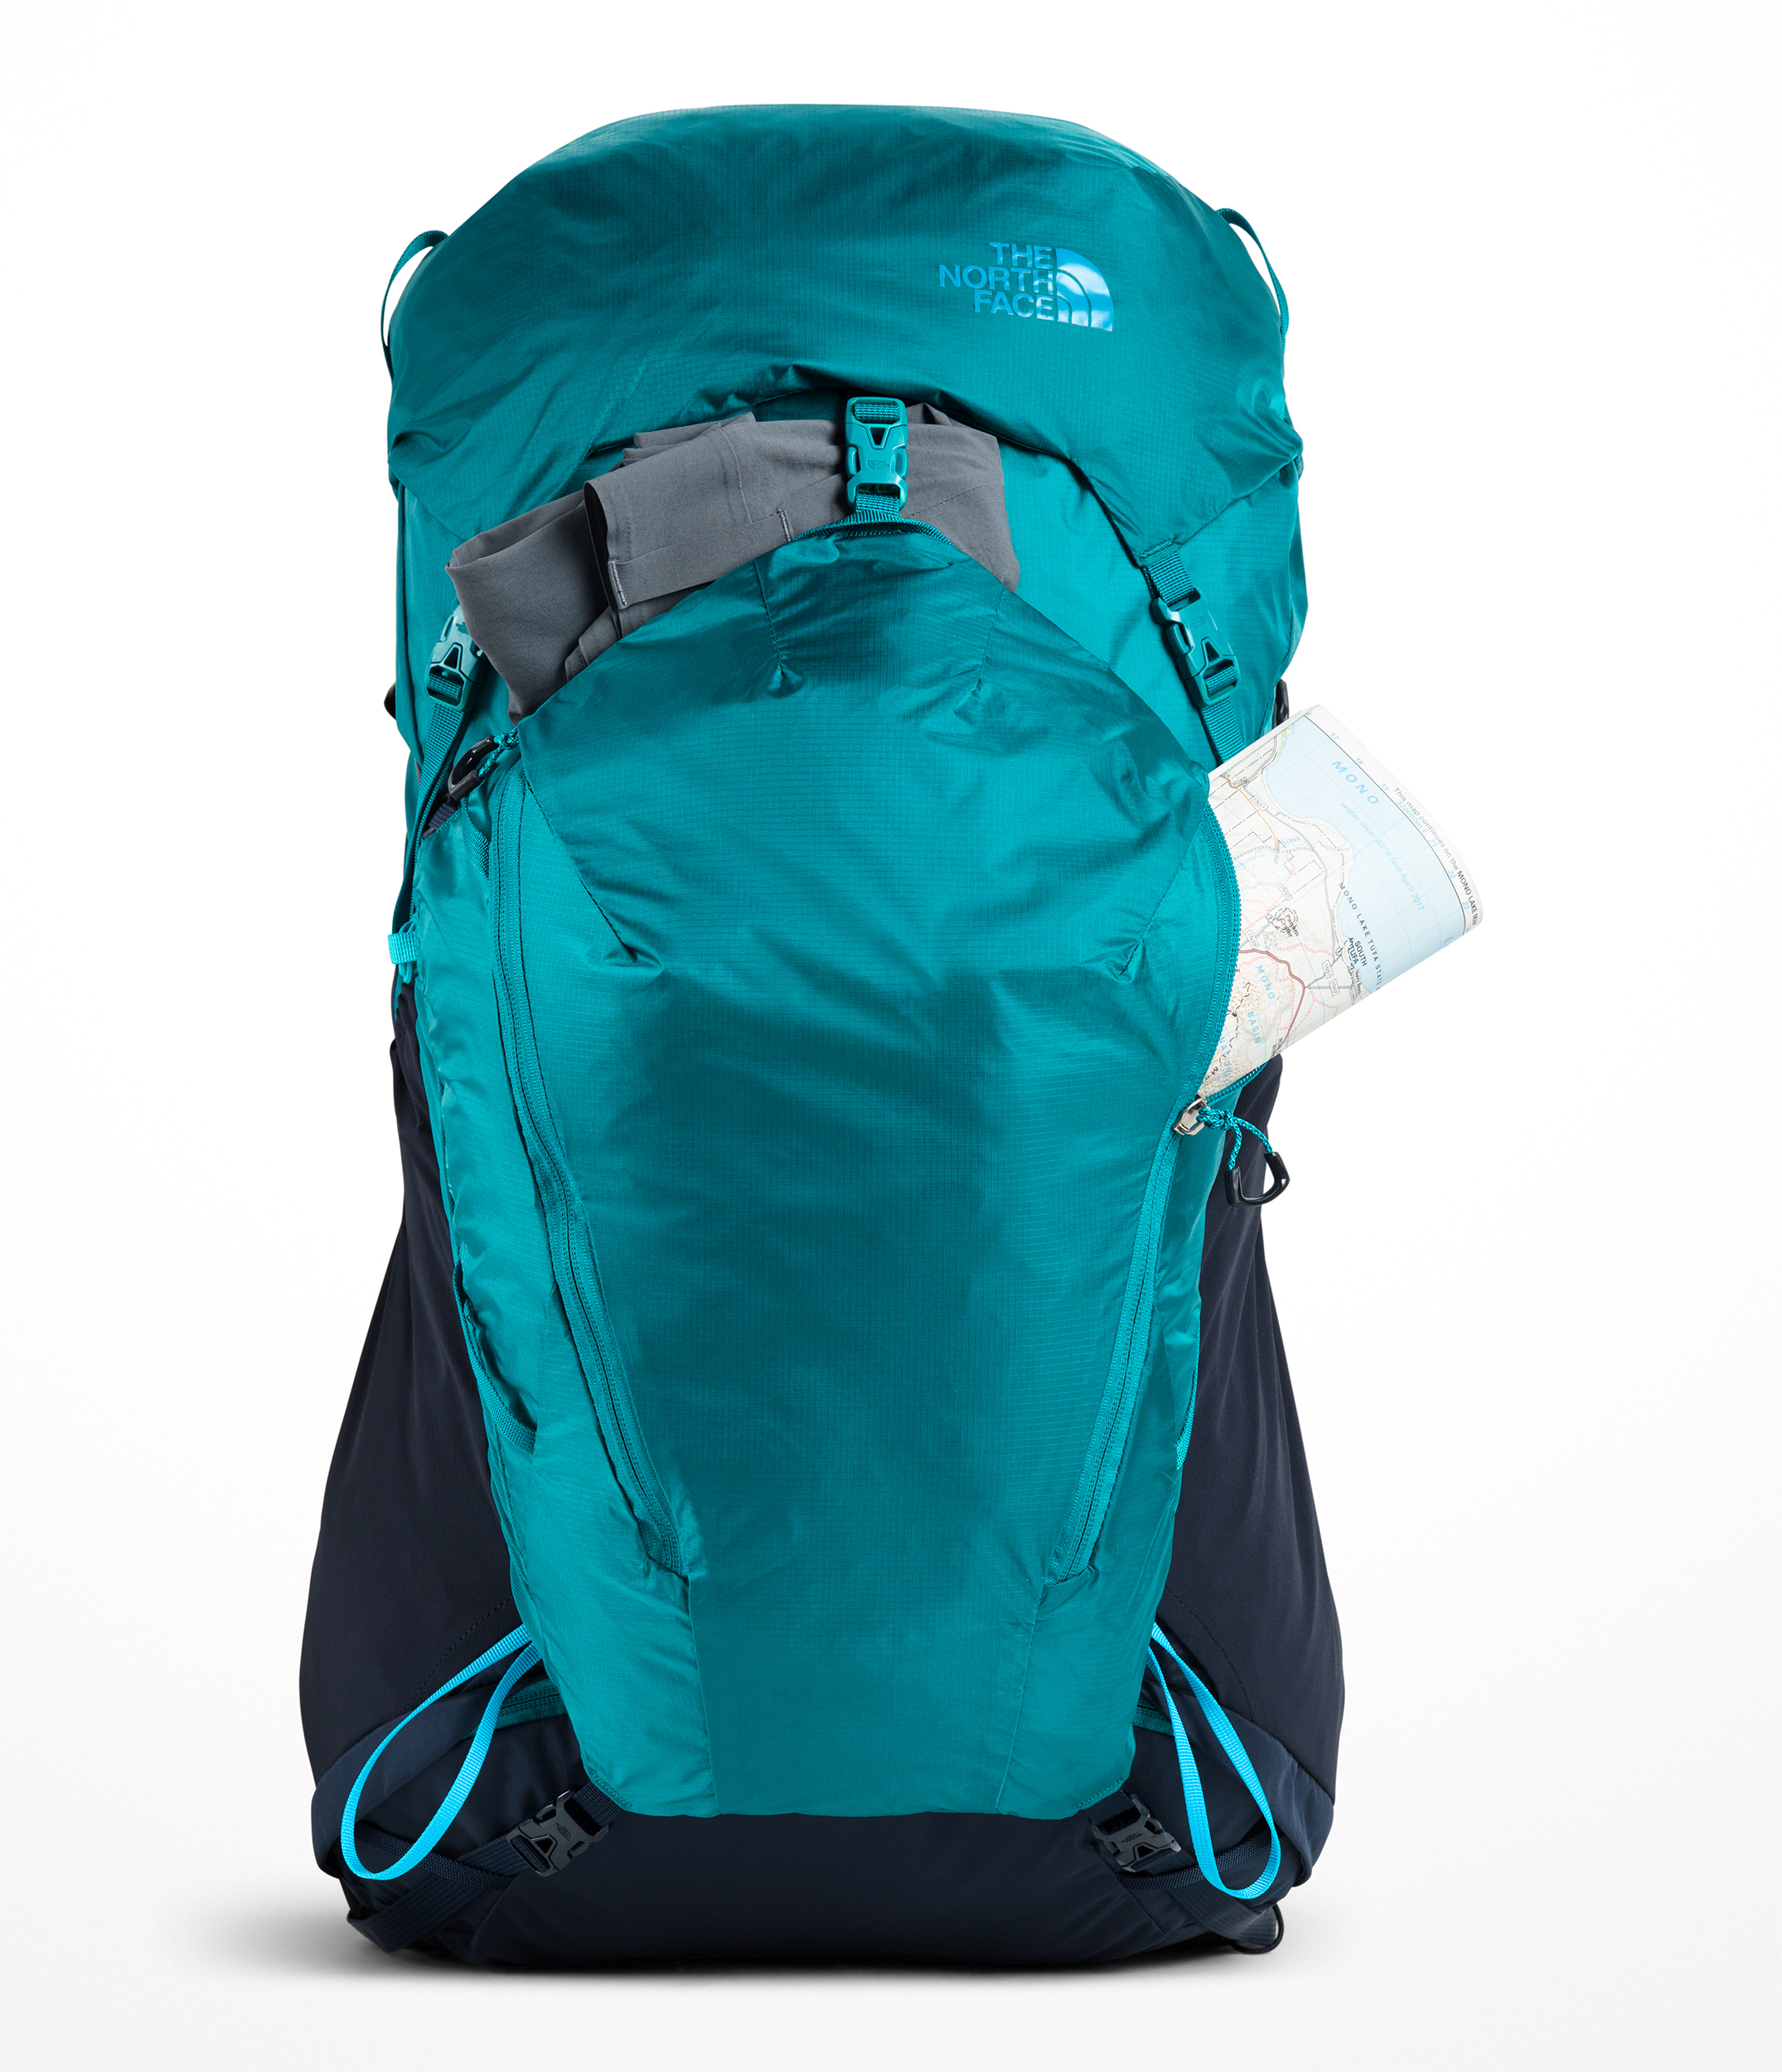 d0f7ce4b7 The North Face Banchee 50 Backpack - Women's